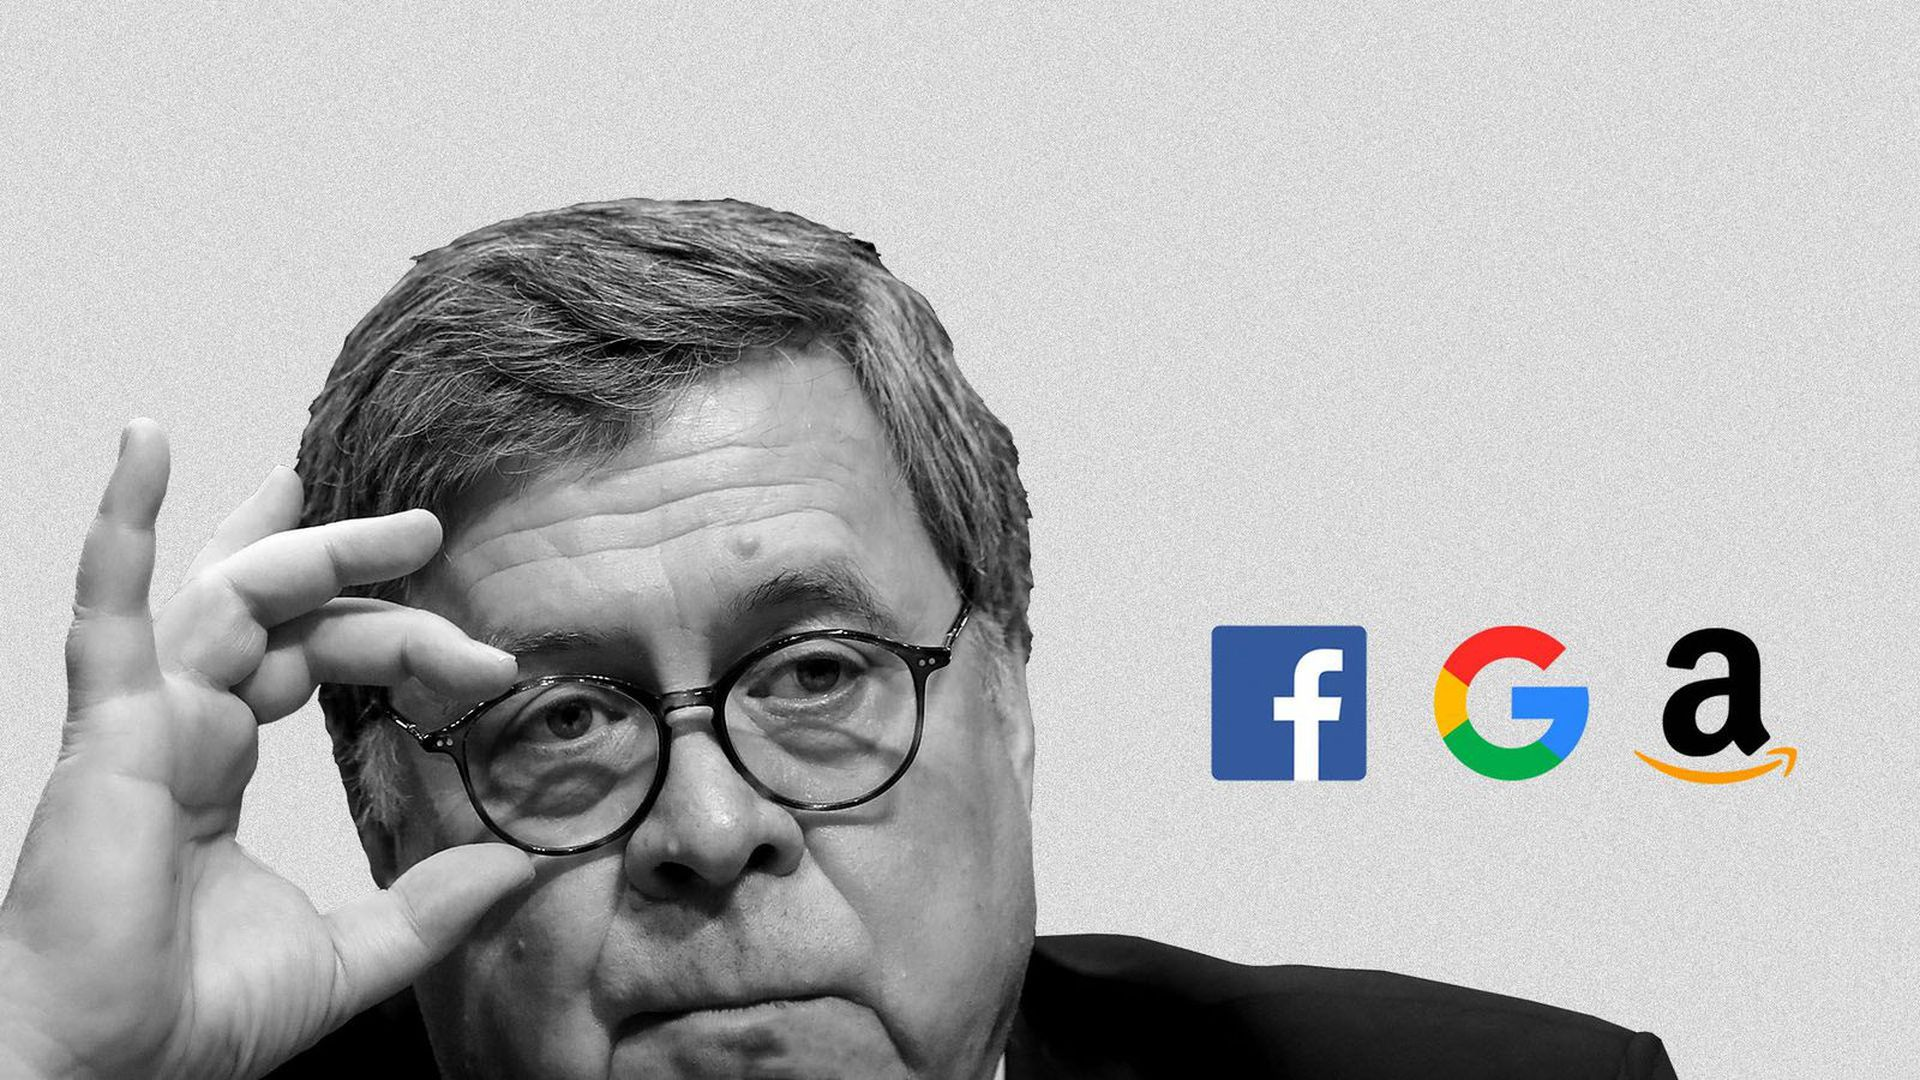 Illustration of Attorney General William Barr eyeing logos of Facebook, Google, and Amazon